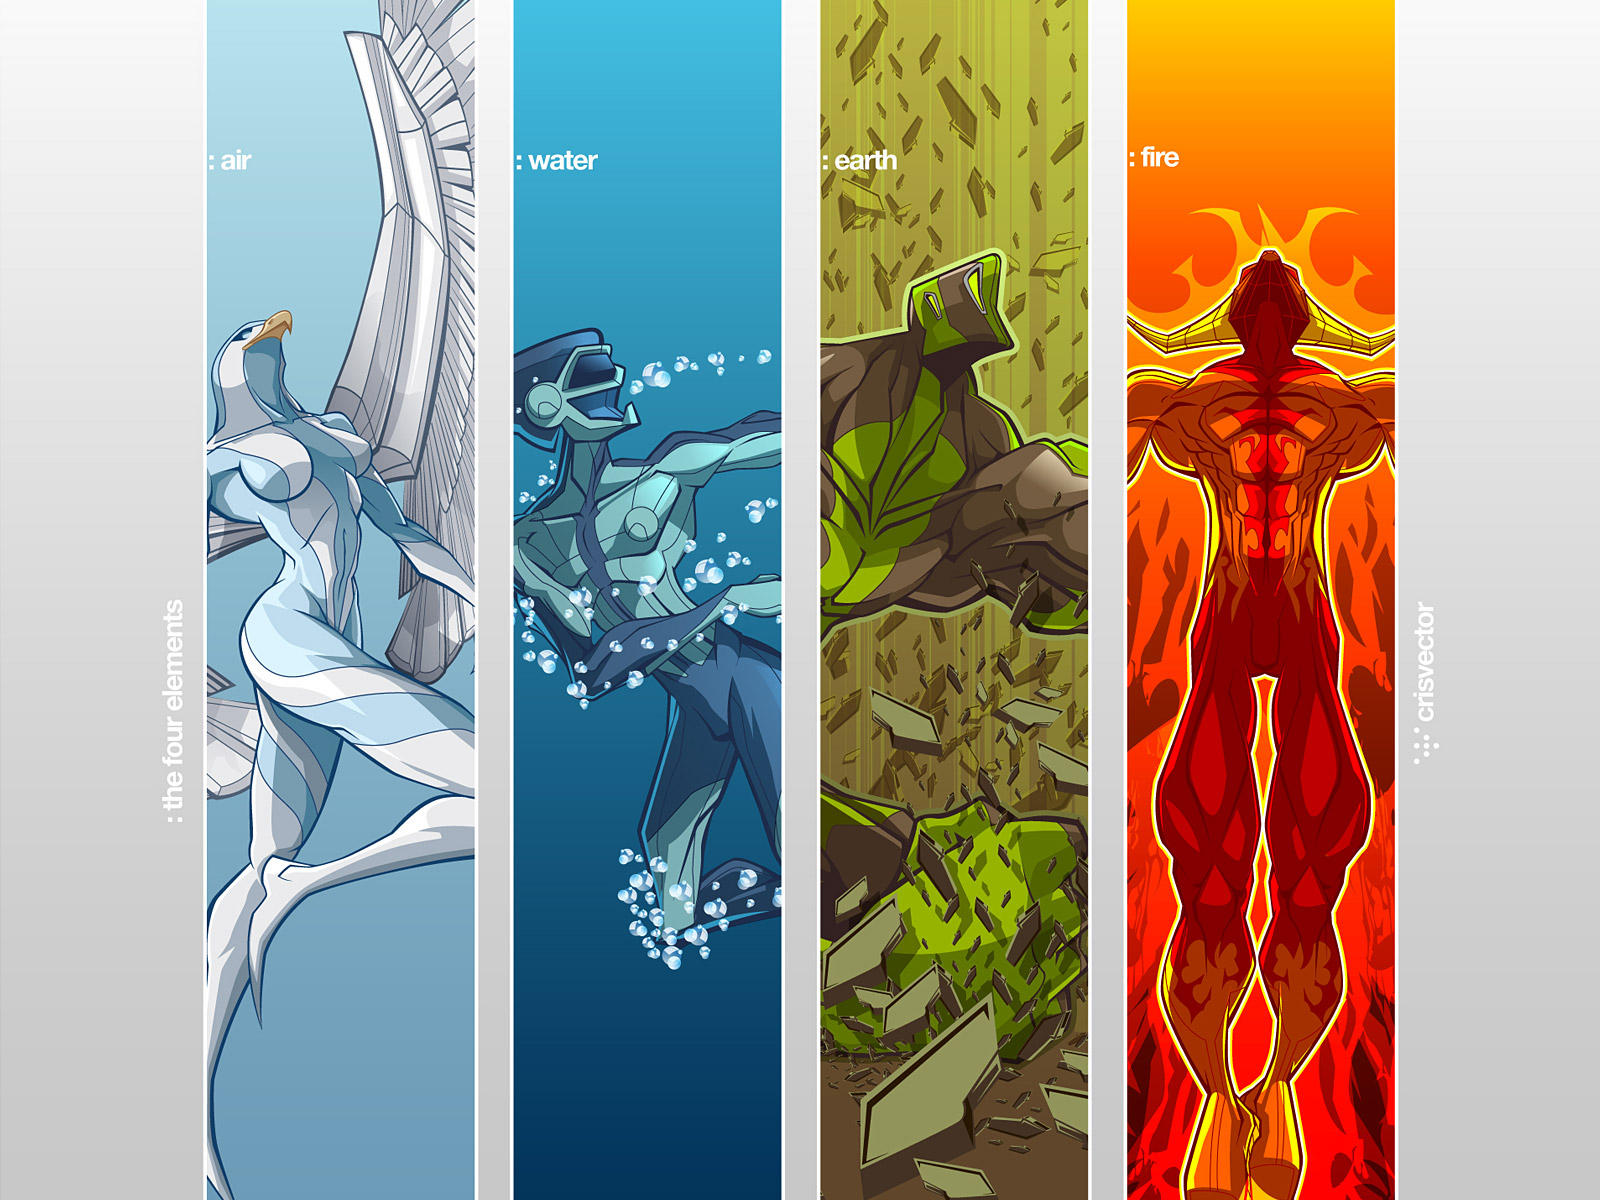 All Elements Of Art : Four elements wallpaper by crisvector on deviantart